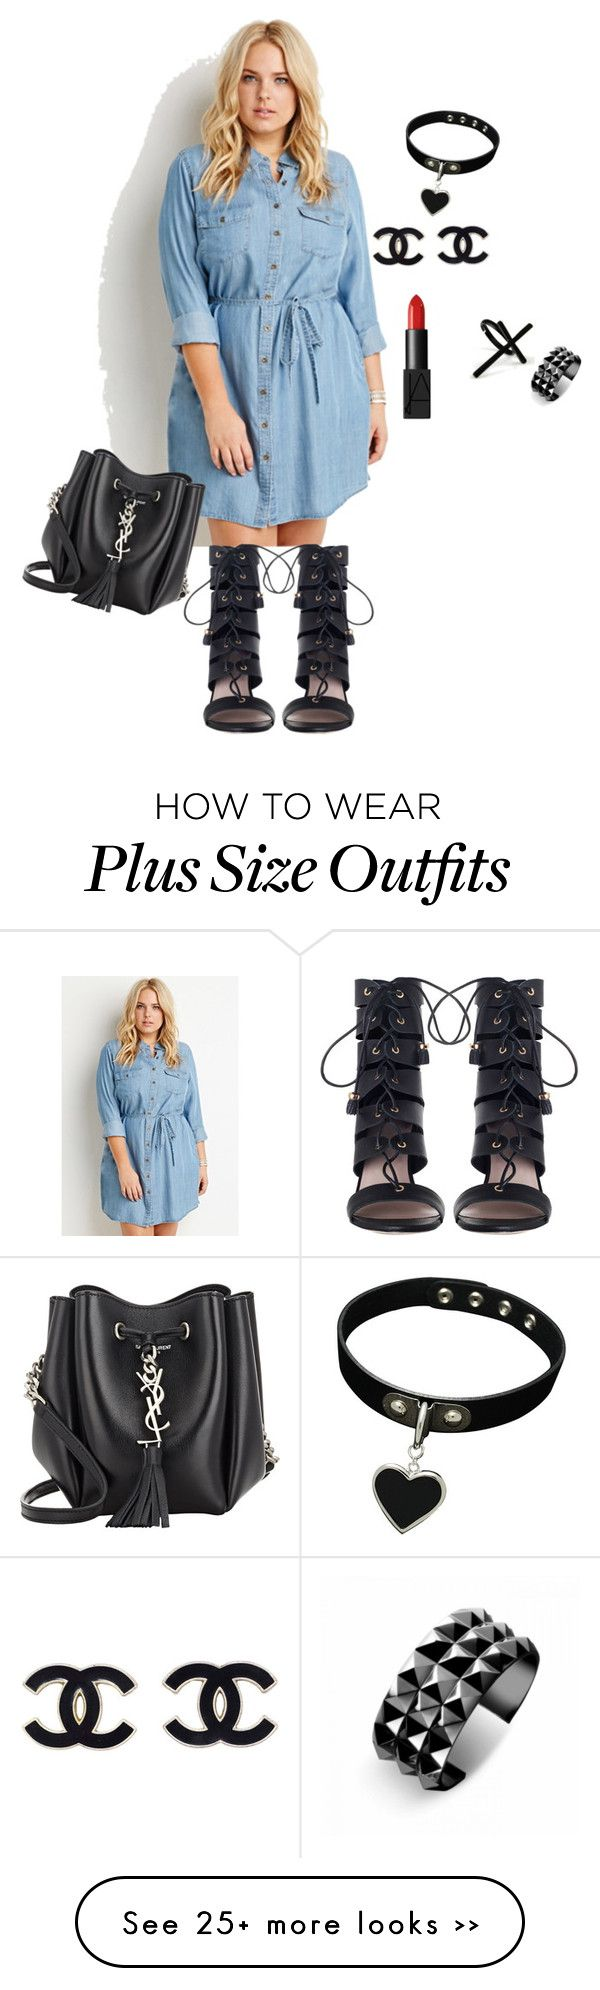 """""""plus size rough edges"""" by kristie-payne on Polyvore featuring mode, Forever 21, Yves Saint Laurent, Zimmermann, NARS Cosmetics, Emi Jewellery et Waterford"""